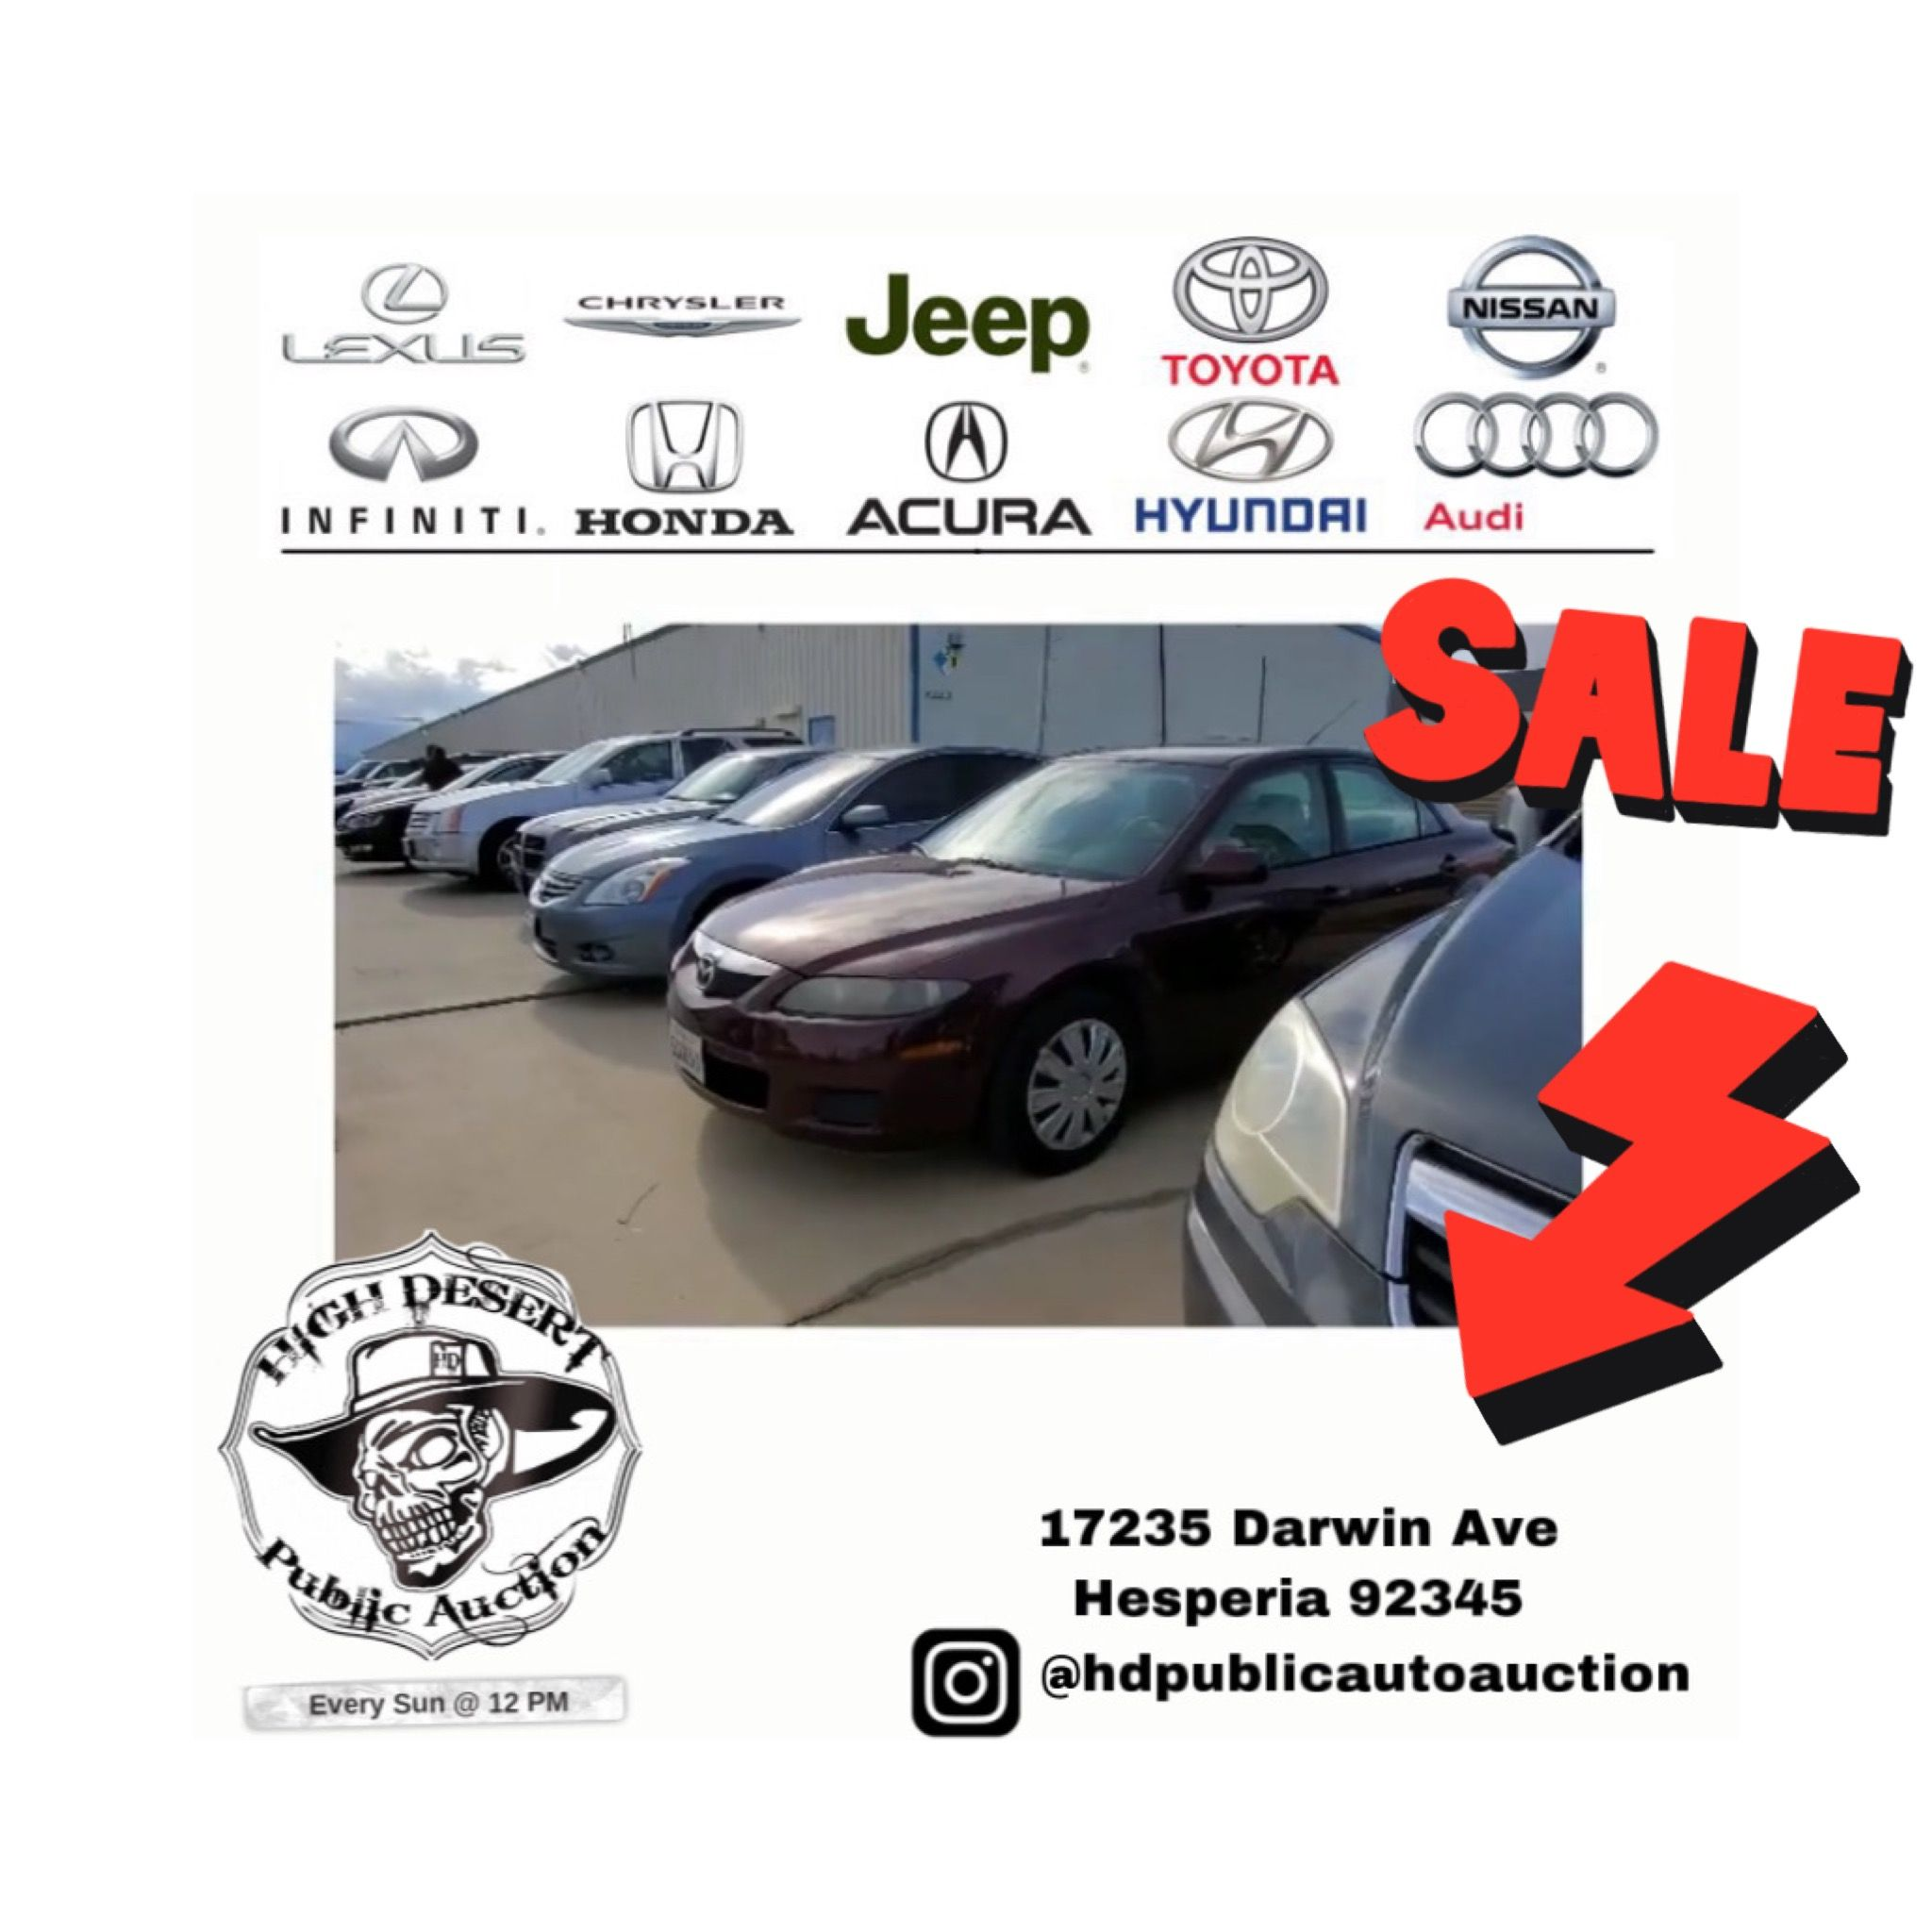 Wholesale Pricing Free Entry Vehicle Auction Open To Public Every Sunday Open 12pm Vehicle Viewing We Start Selling At 1pm In 2020 Car Auctions Car Shop Hesperia